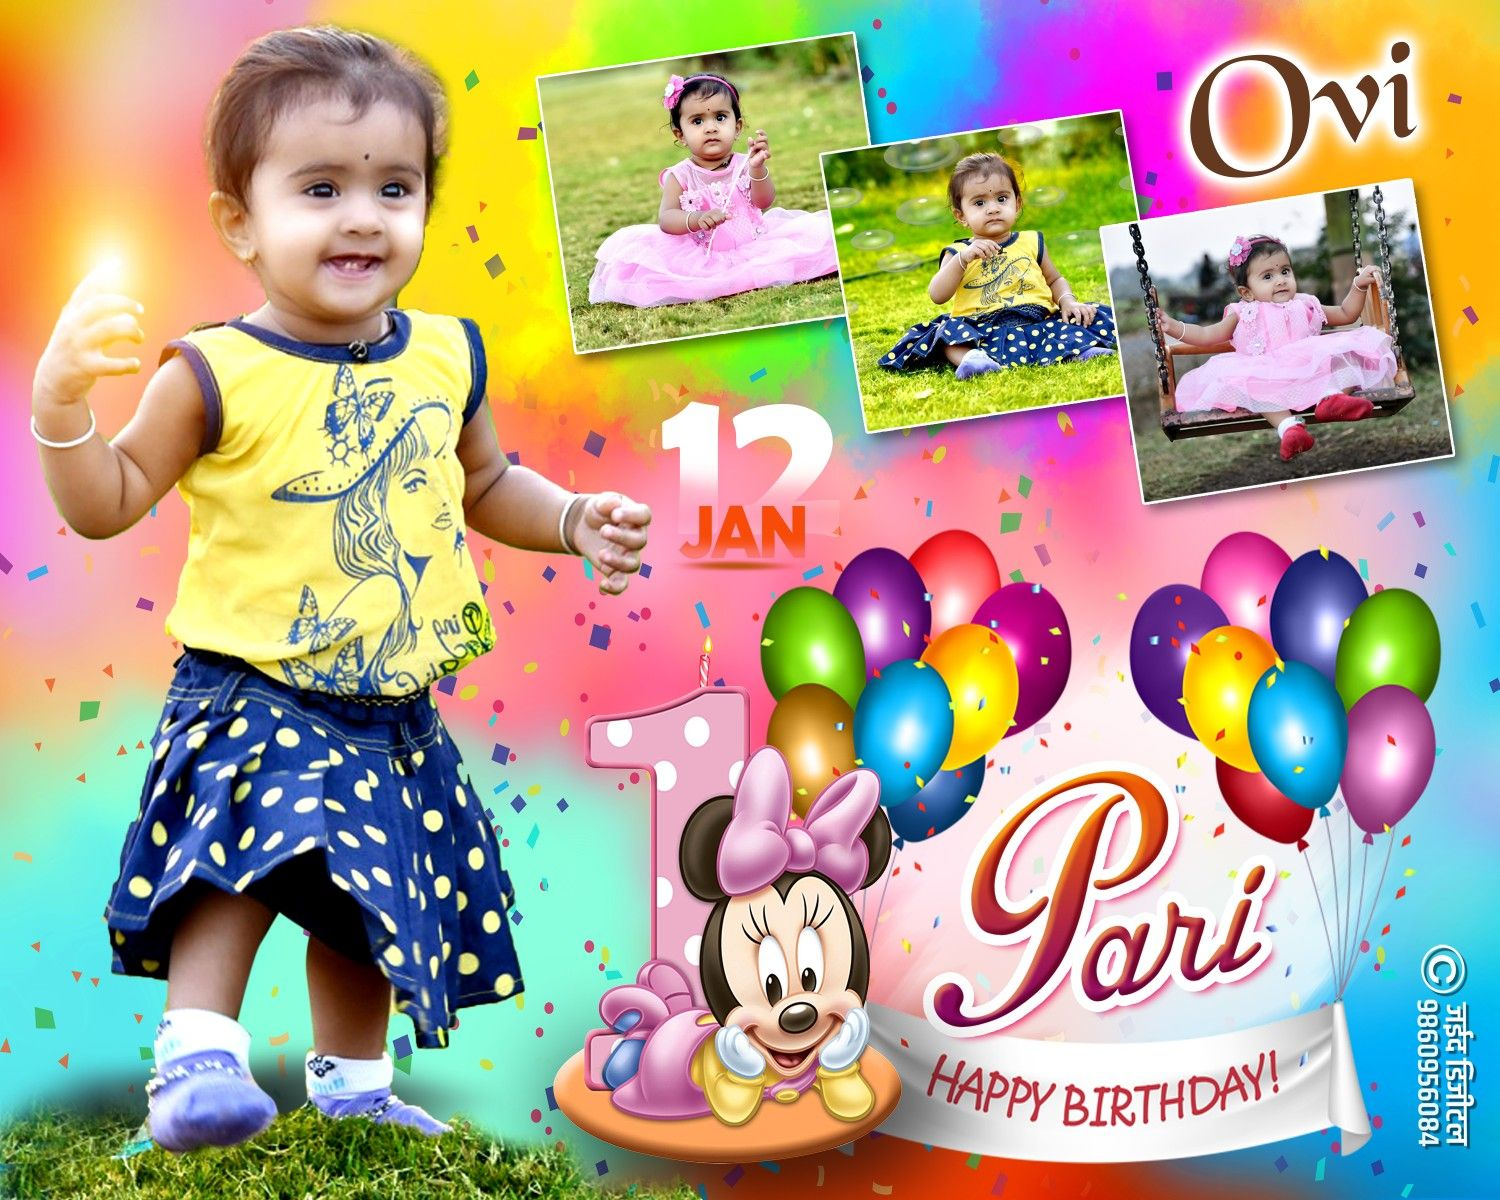 Happy Birthday Pari Birthday Banner Design Wedding Banner